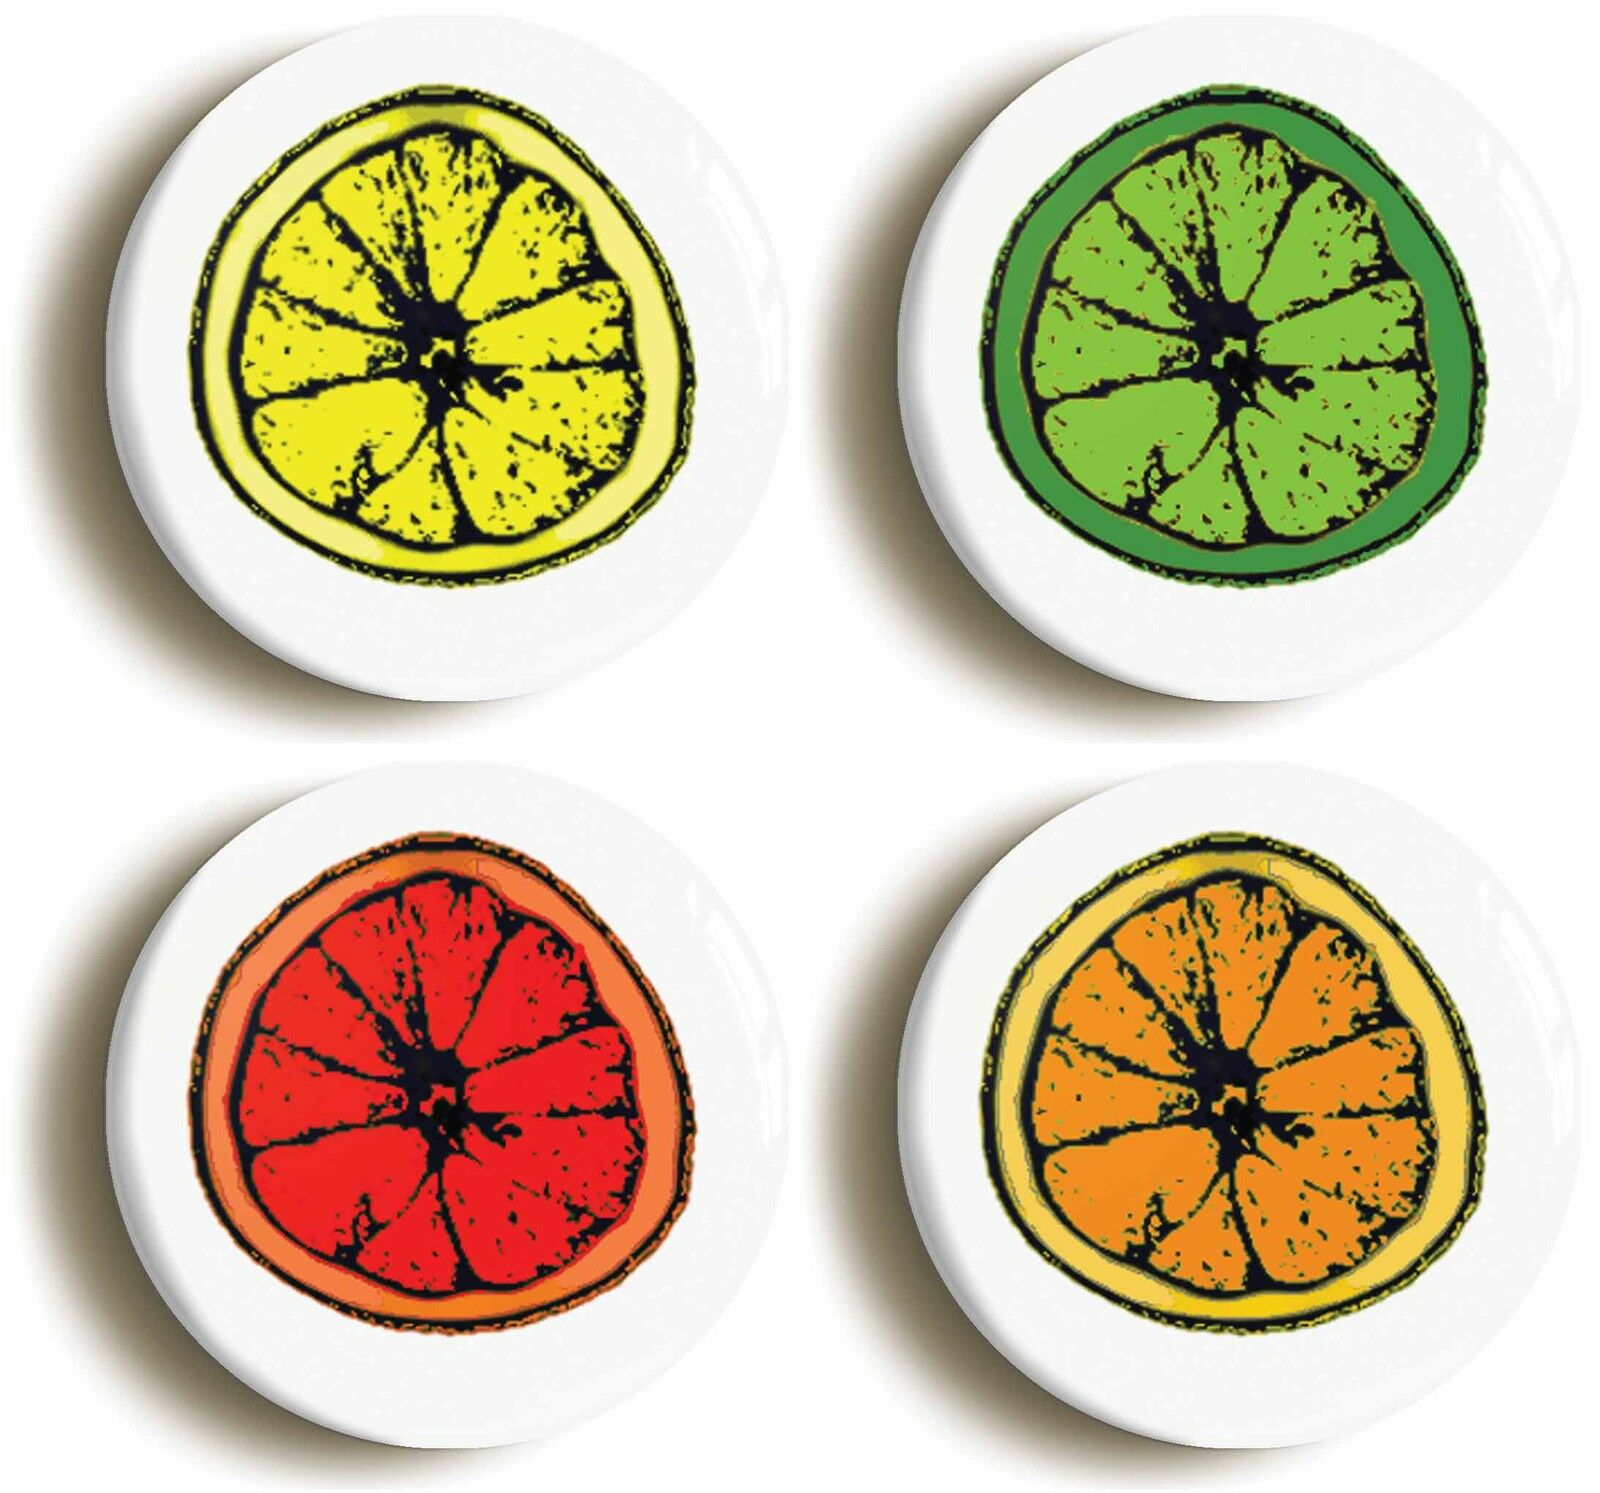 lemon lime orange slice logo badge button pin set (size is 1inch/25mm diameter)